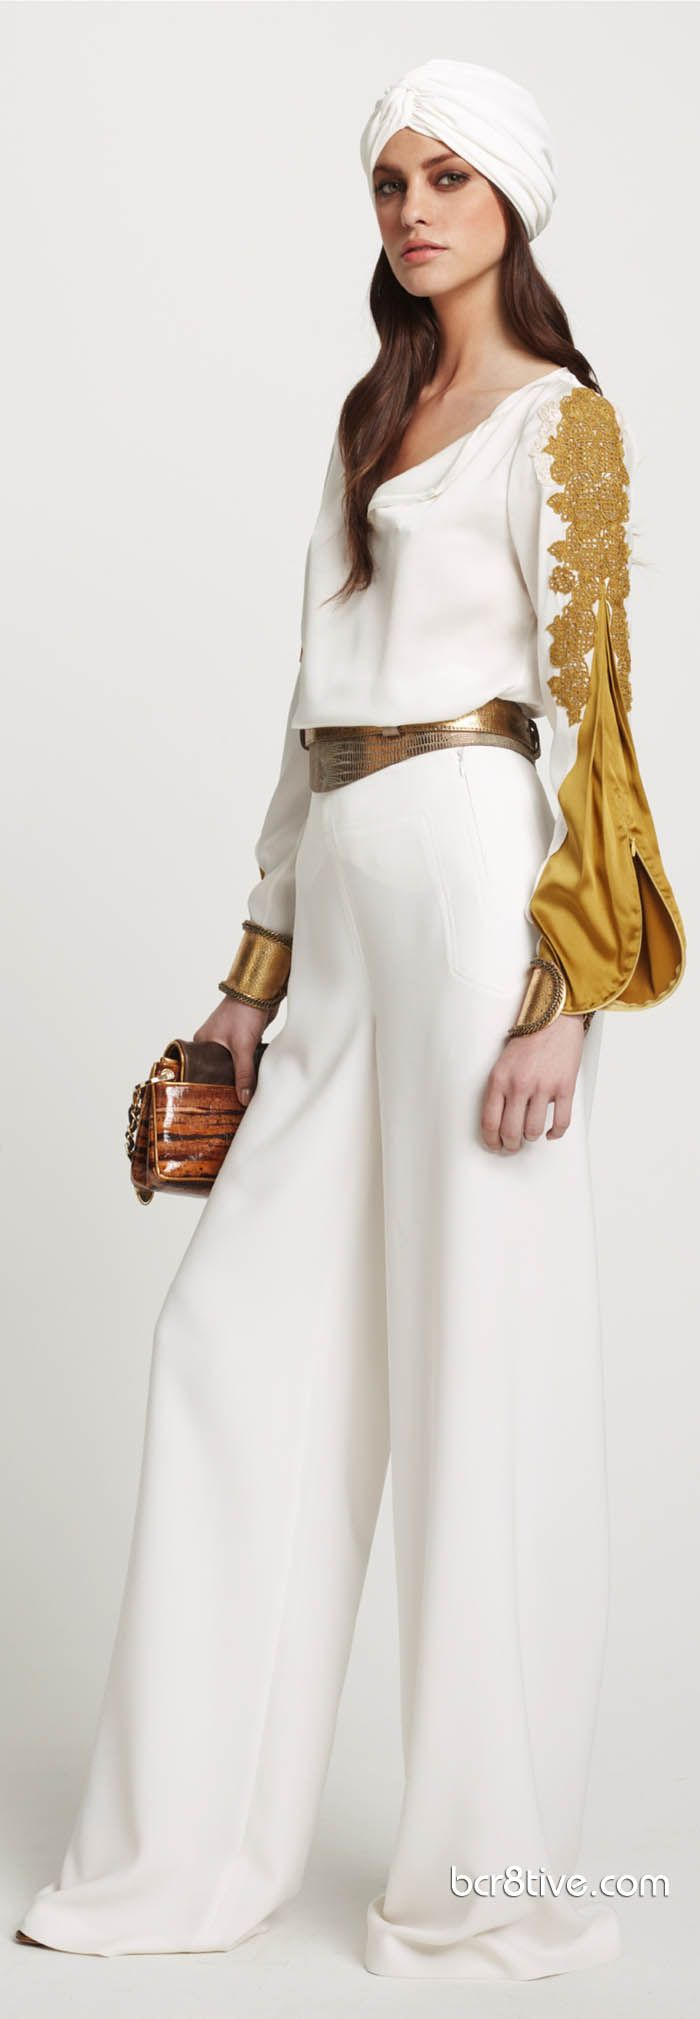 Elie Tahari Resort 2012 white and gold elegant pants outfit - classic and timeless style!